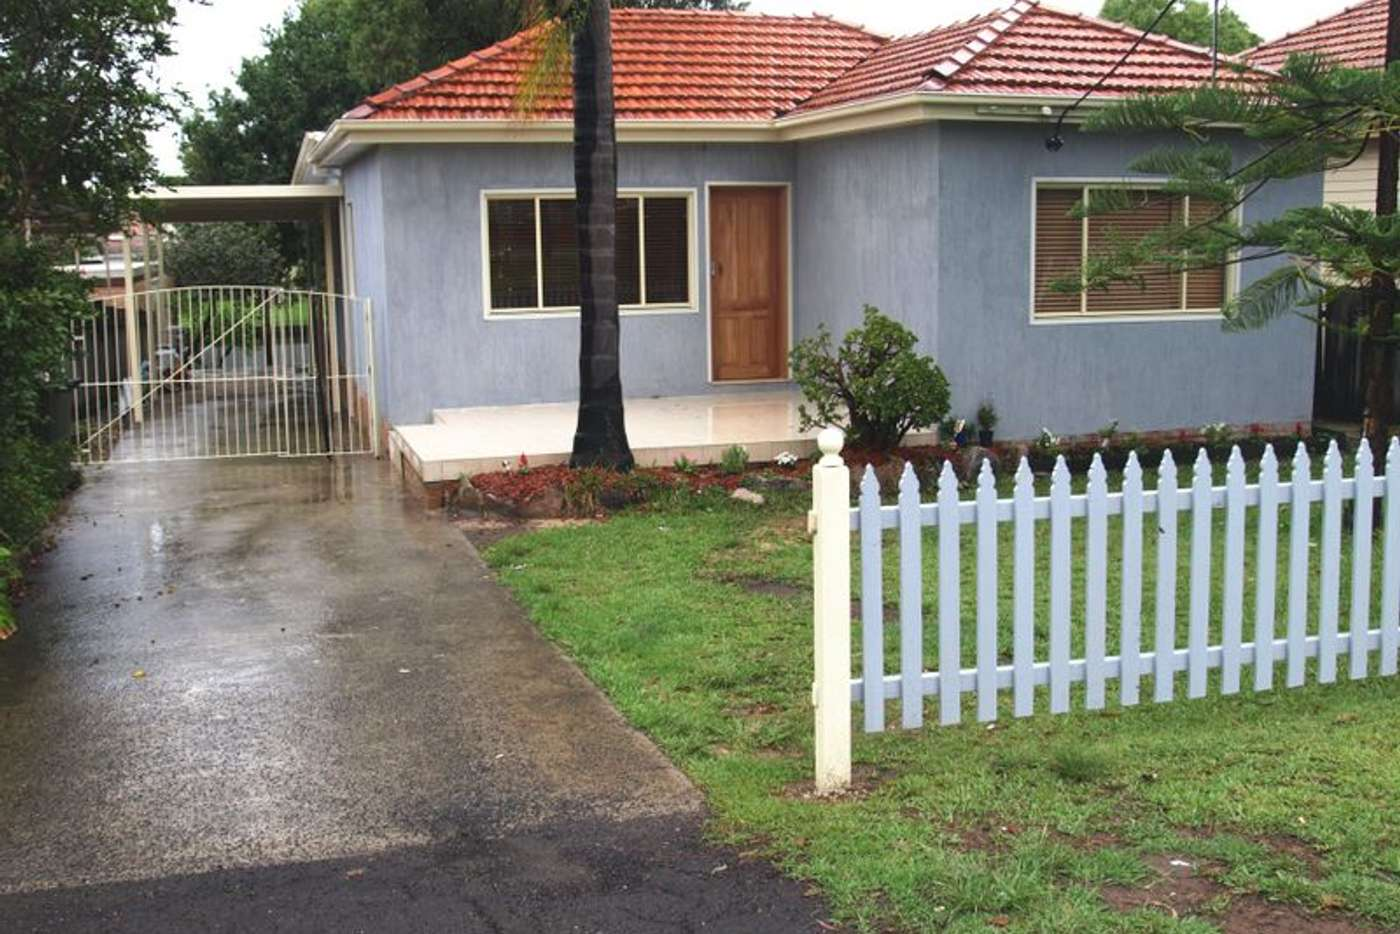 Main view of Homely house listing, 42 Finlayson.. Street, Wentworthville NSW 2145